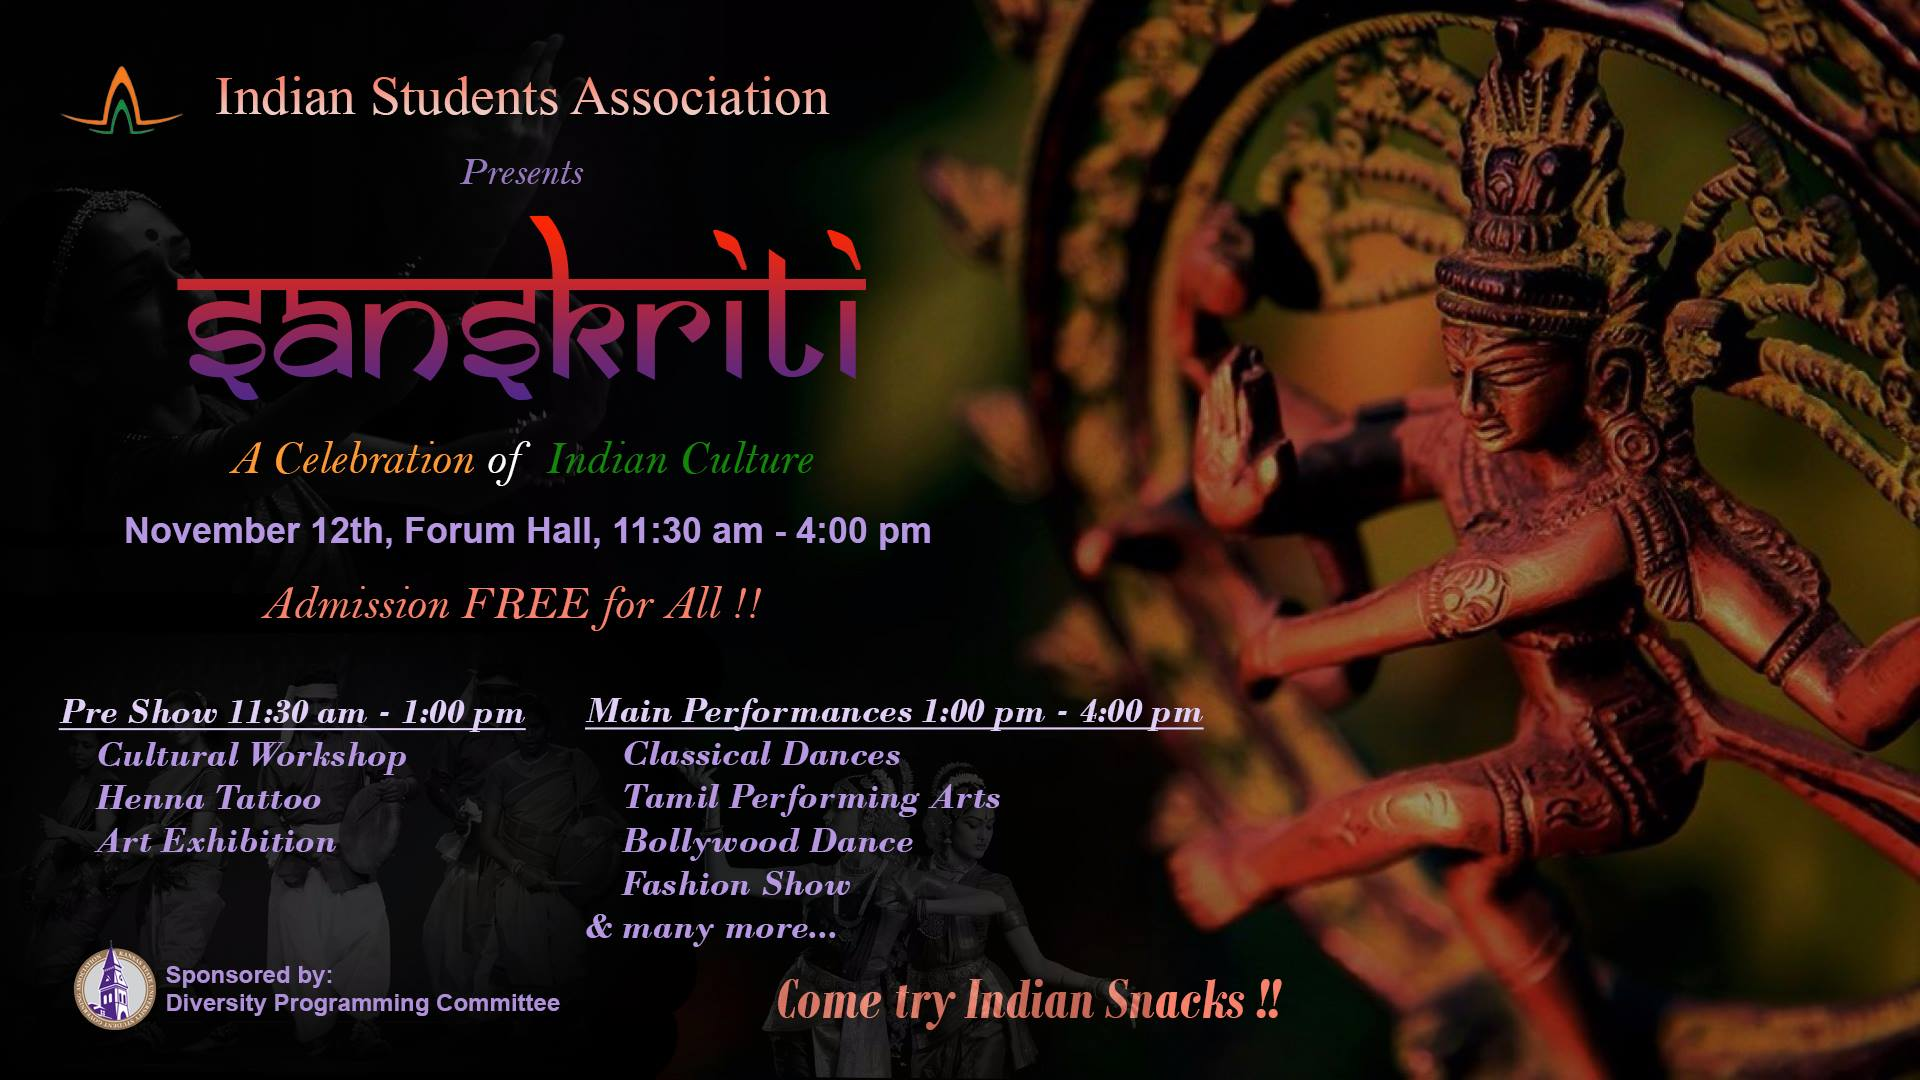 indian-students-association-event